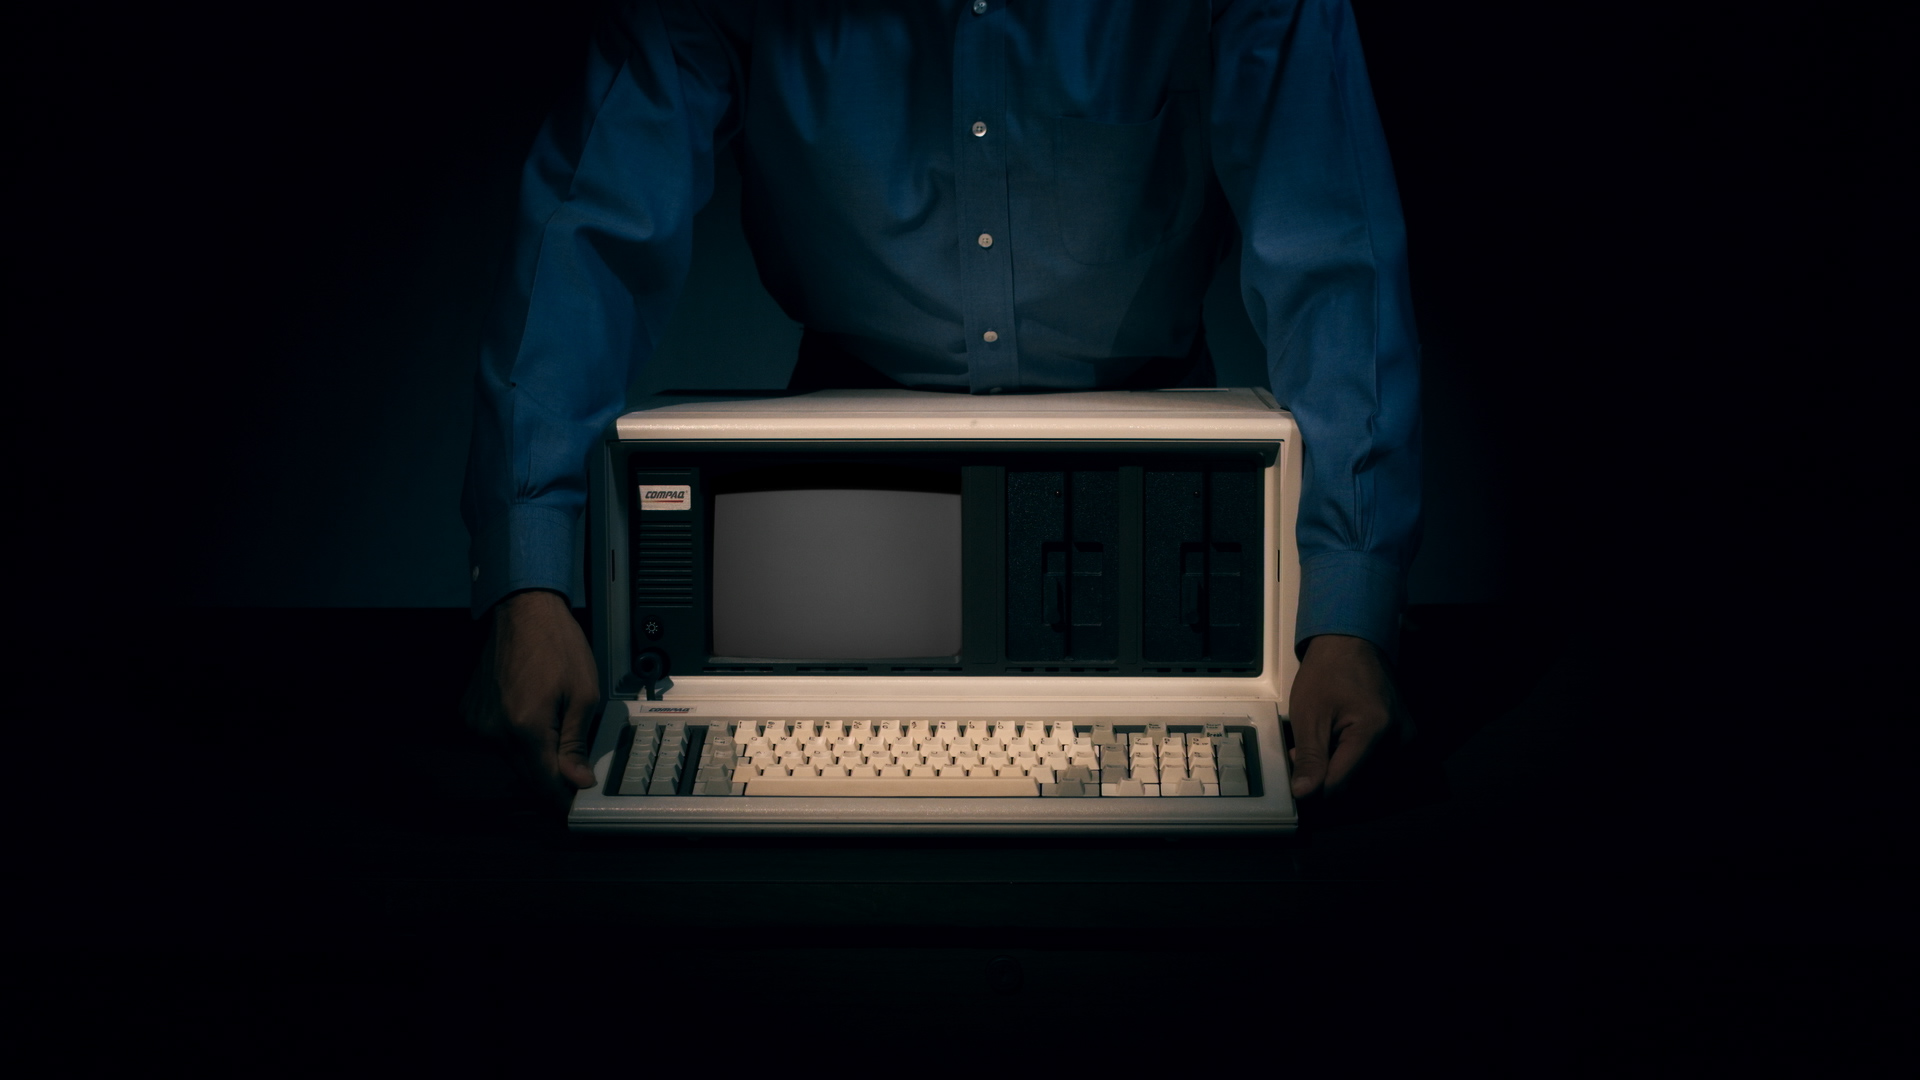 The Compaq portable computer. Credit: Svetlana Cvetko. Courtesy of FilmRise.